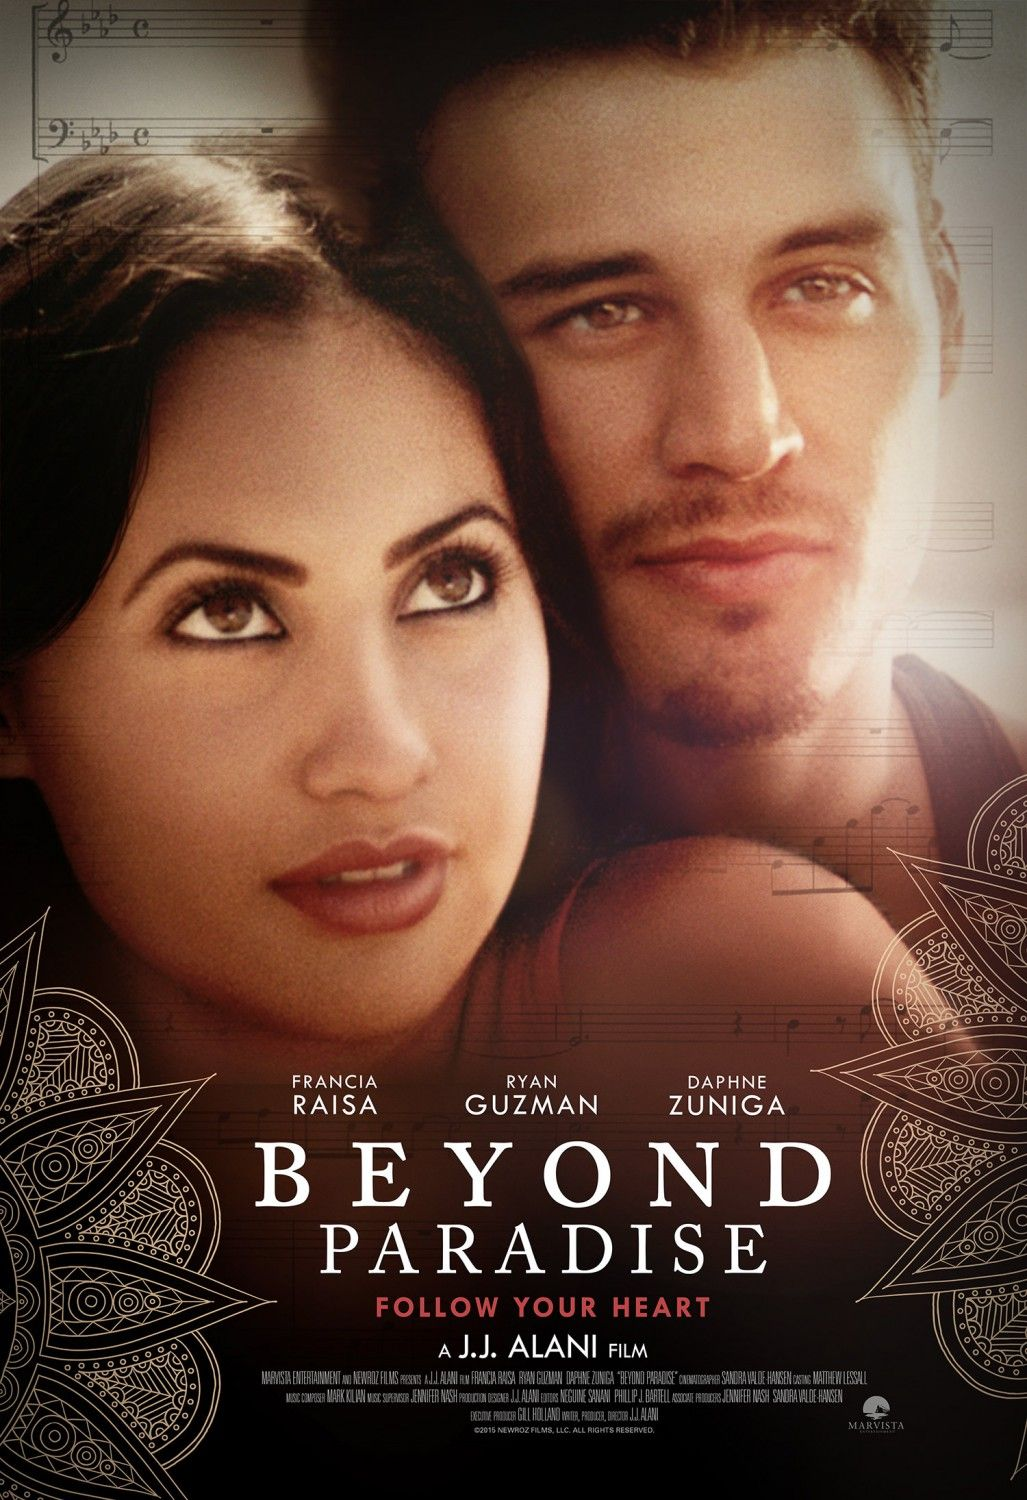 Beyond Paradise | Movie Posters in 2019 | Streaming movies